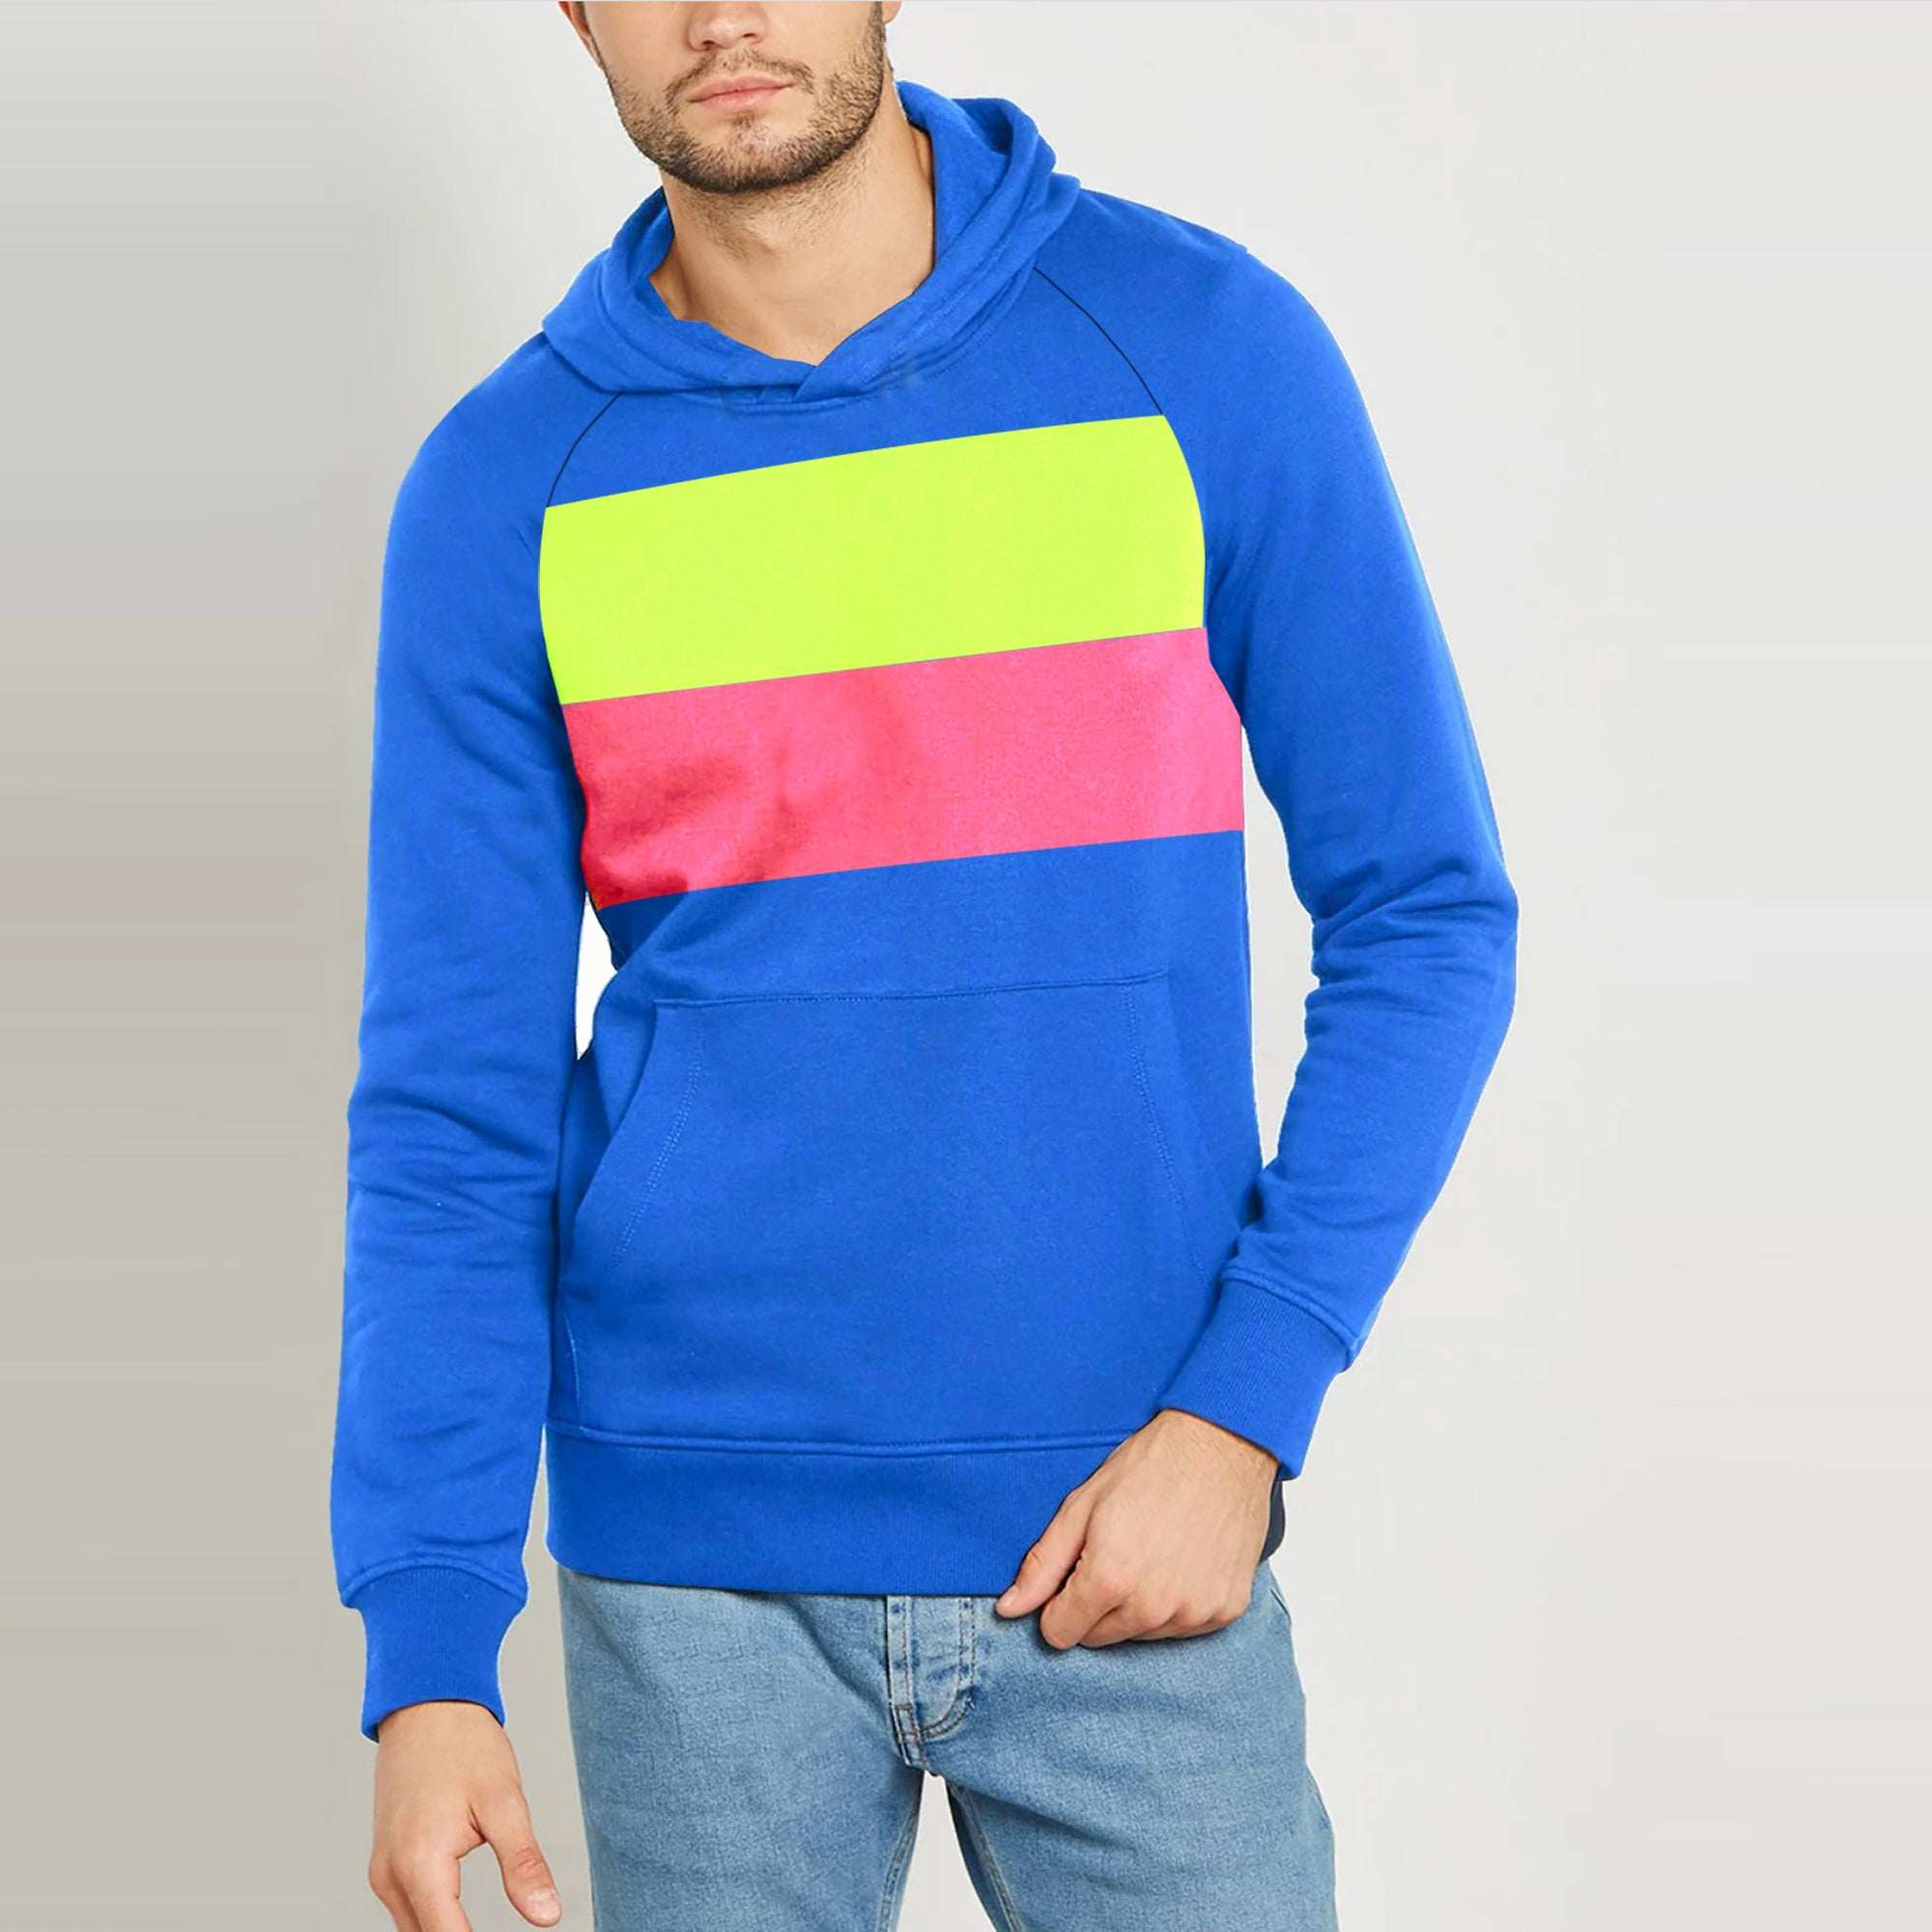 New Stylish Terry Fleece Pullover Hoodie For Men-Royal Blue With Parrot Green & Pink Panels-SP1659